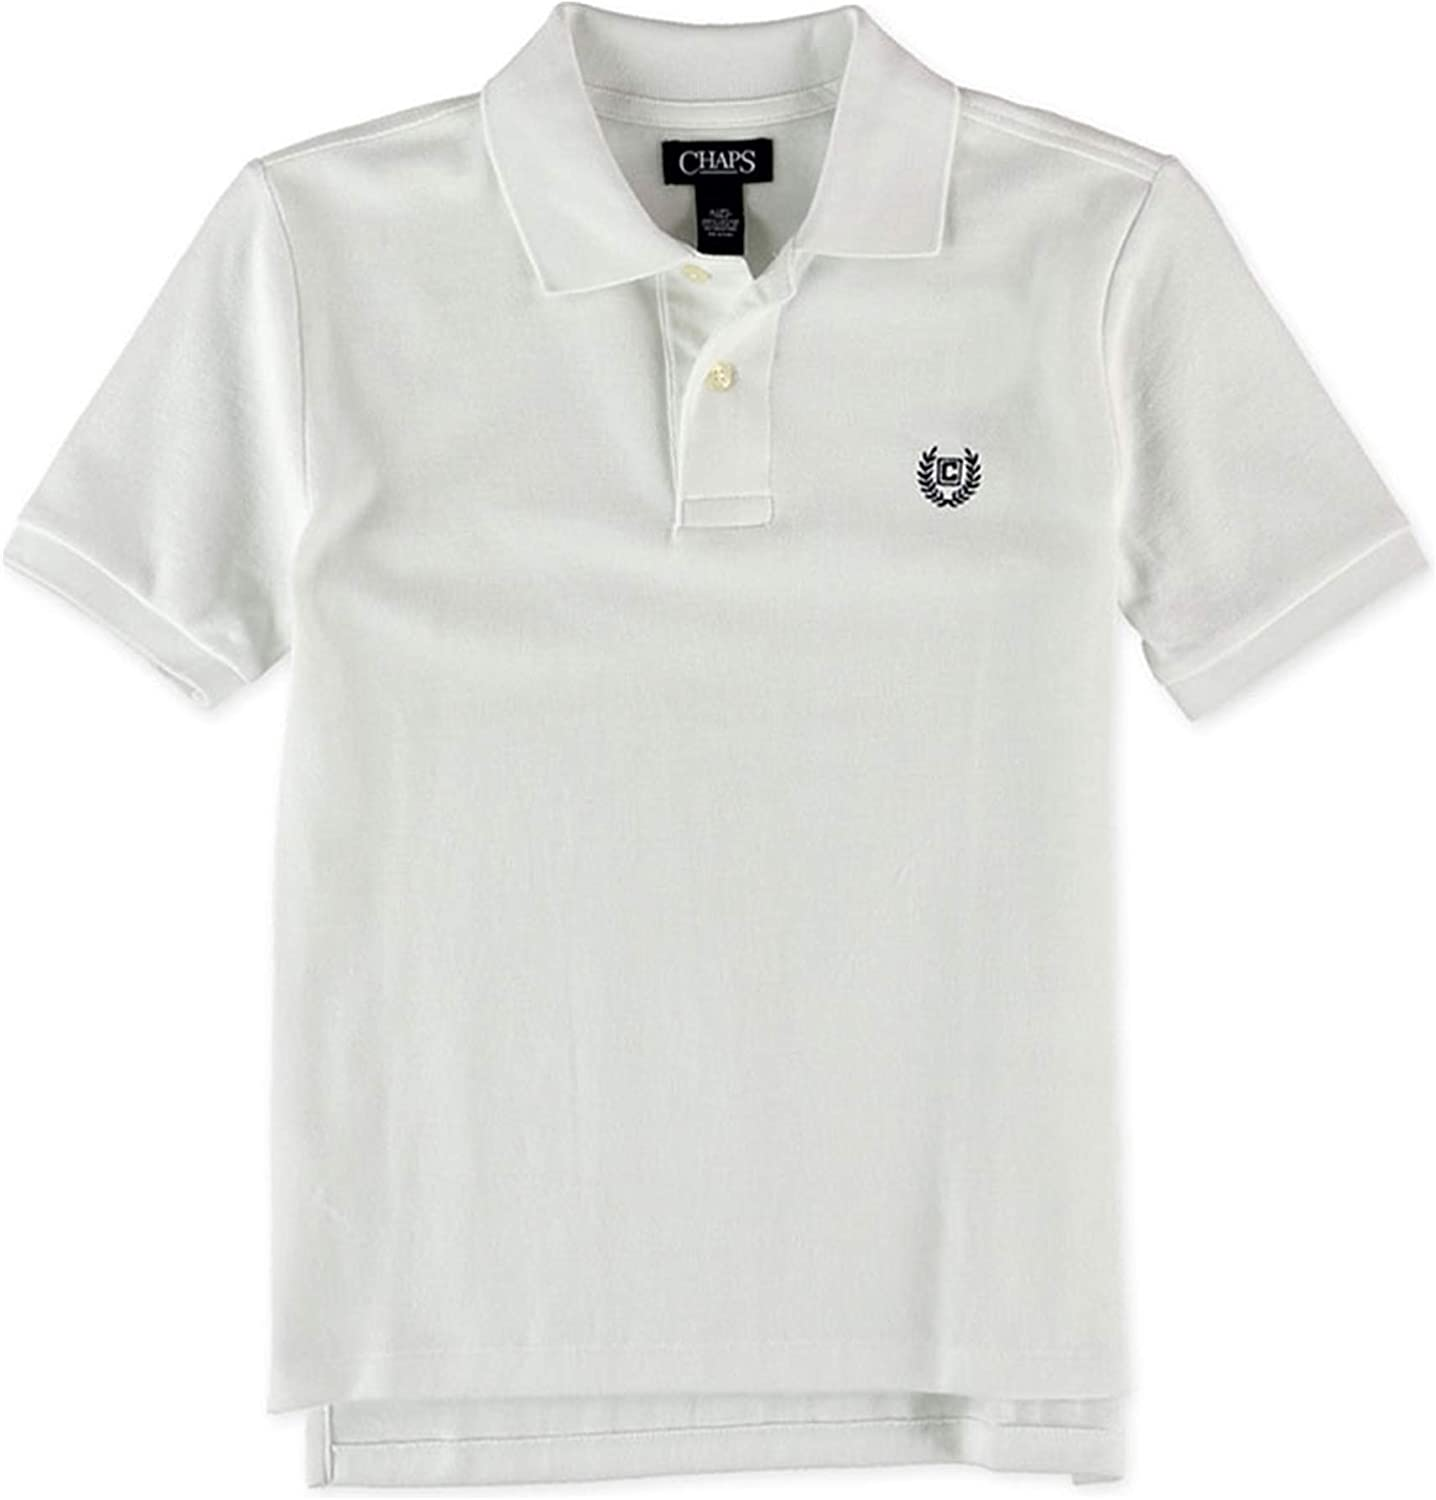 Chaps Boys Solid Rugby Polo Shirt, White, S (8)